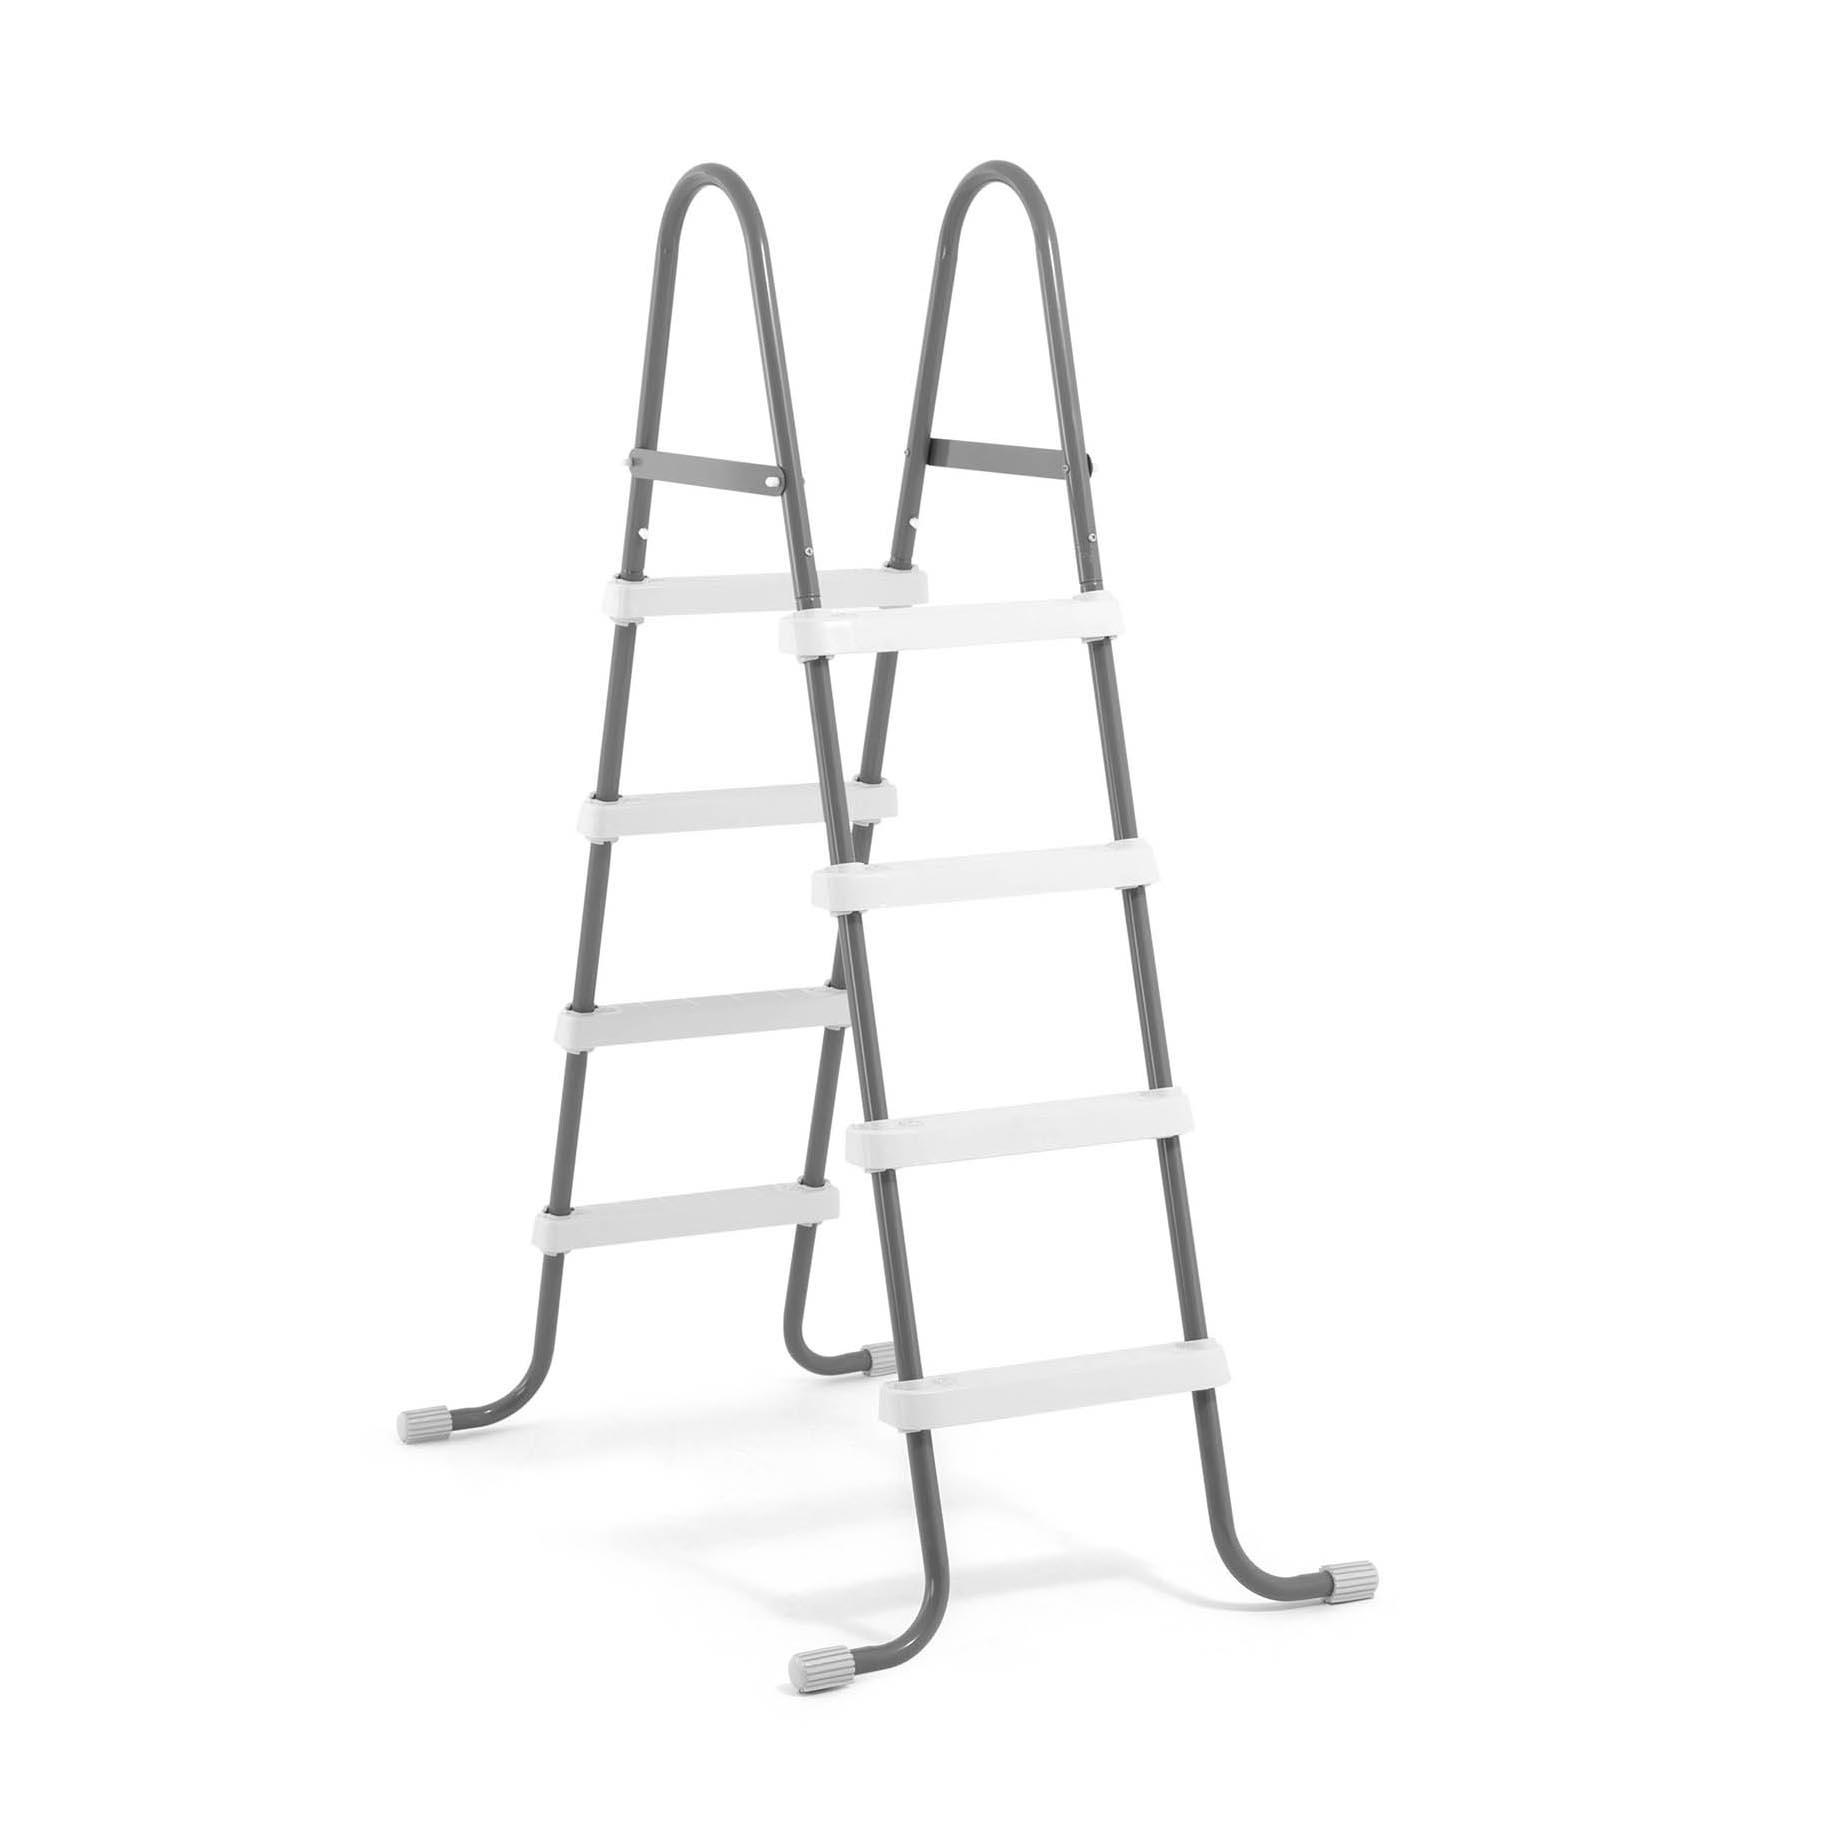 Intex Steel Frame Above Ground Swimming Pool Ladder for 48&#034 ...